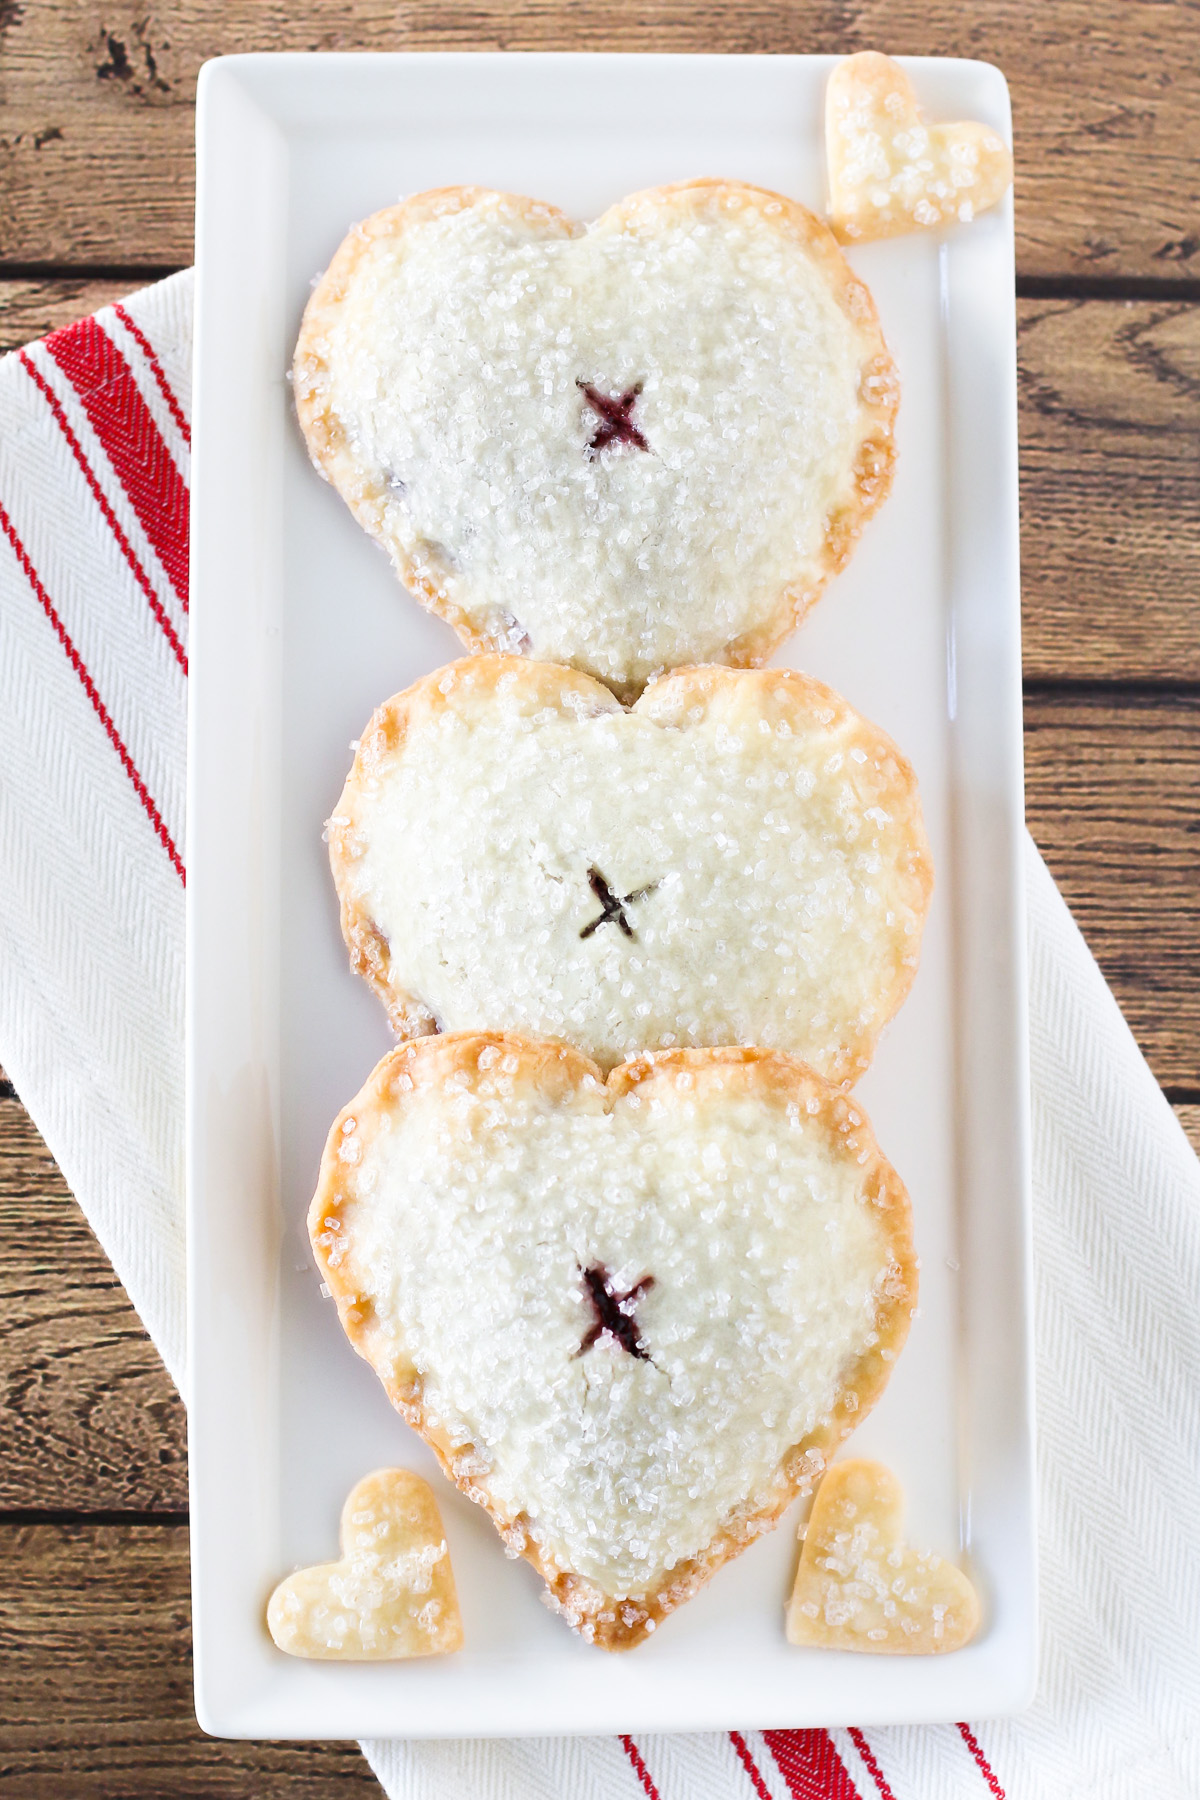 Gluten Free Vegan Sweetheart Cherry Hand Pies. Heart-shaped flakey pastry with a sweet, dark cherry filling.